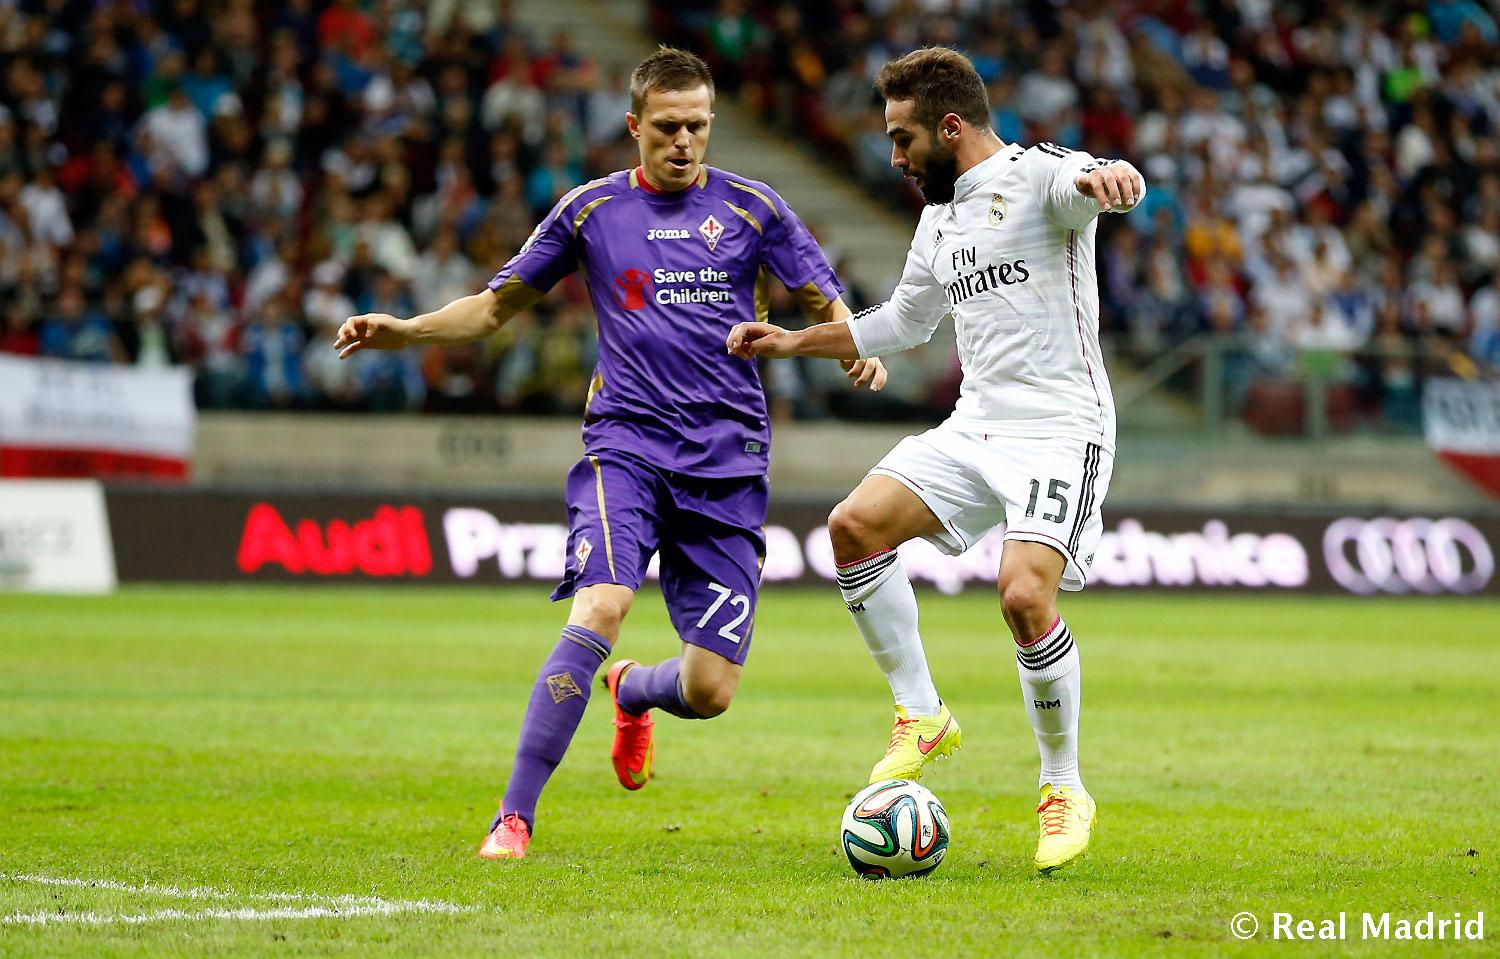 Real Madrid - Real Madrid - Fiorentina - 16-08-2014